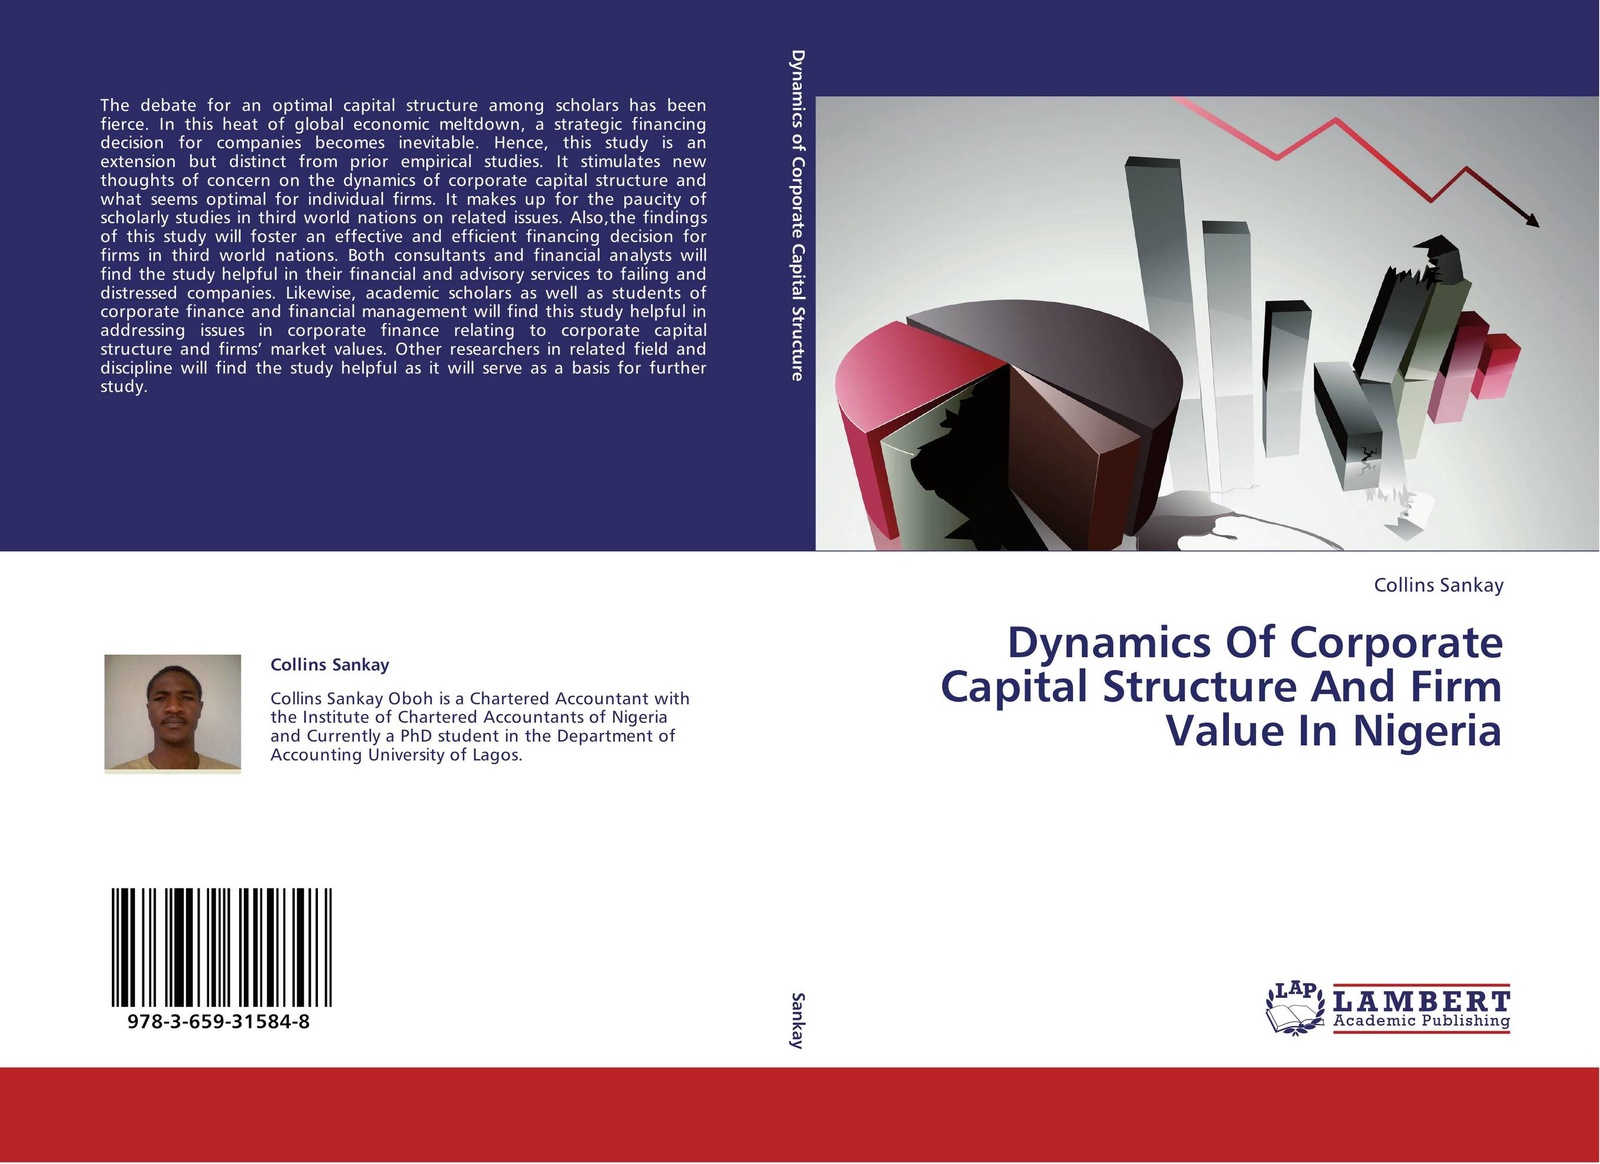 лучшая цена Collins Sankay Dynamics Of Corporate Capital Structure And Firm Value In Nigeria